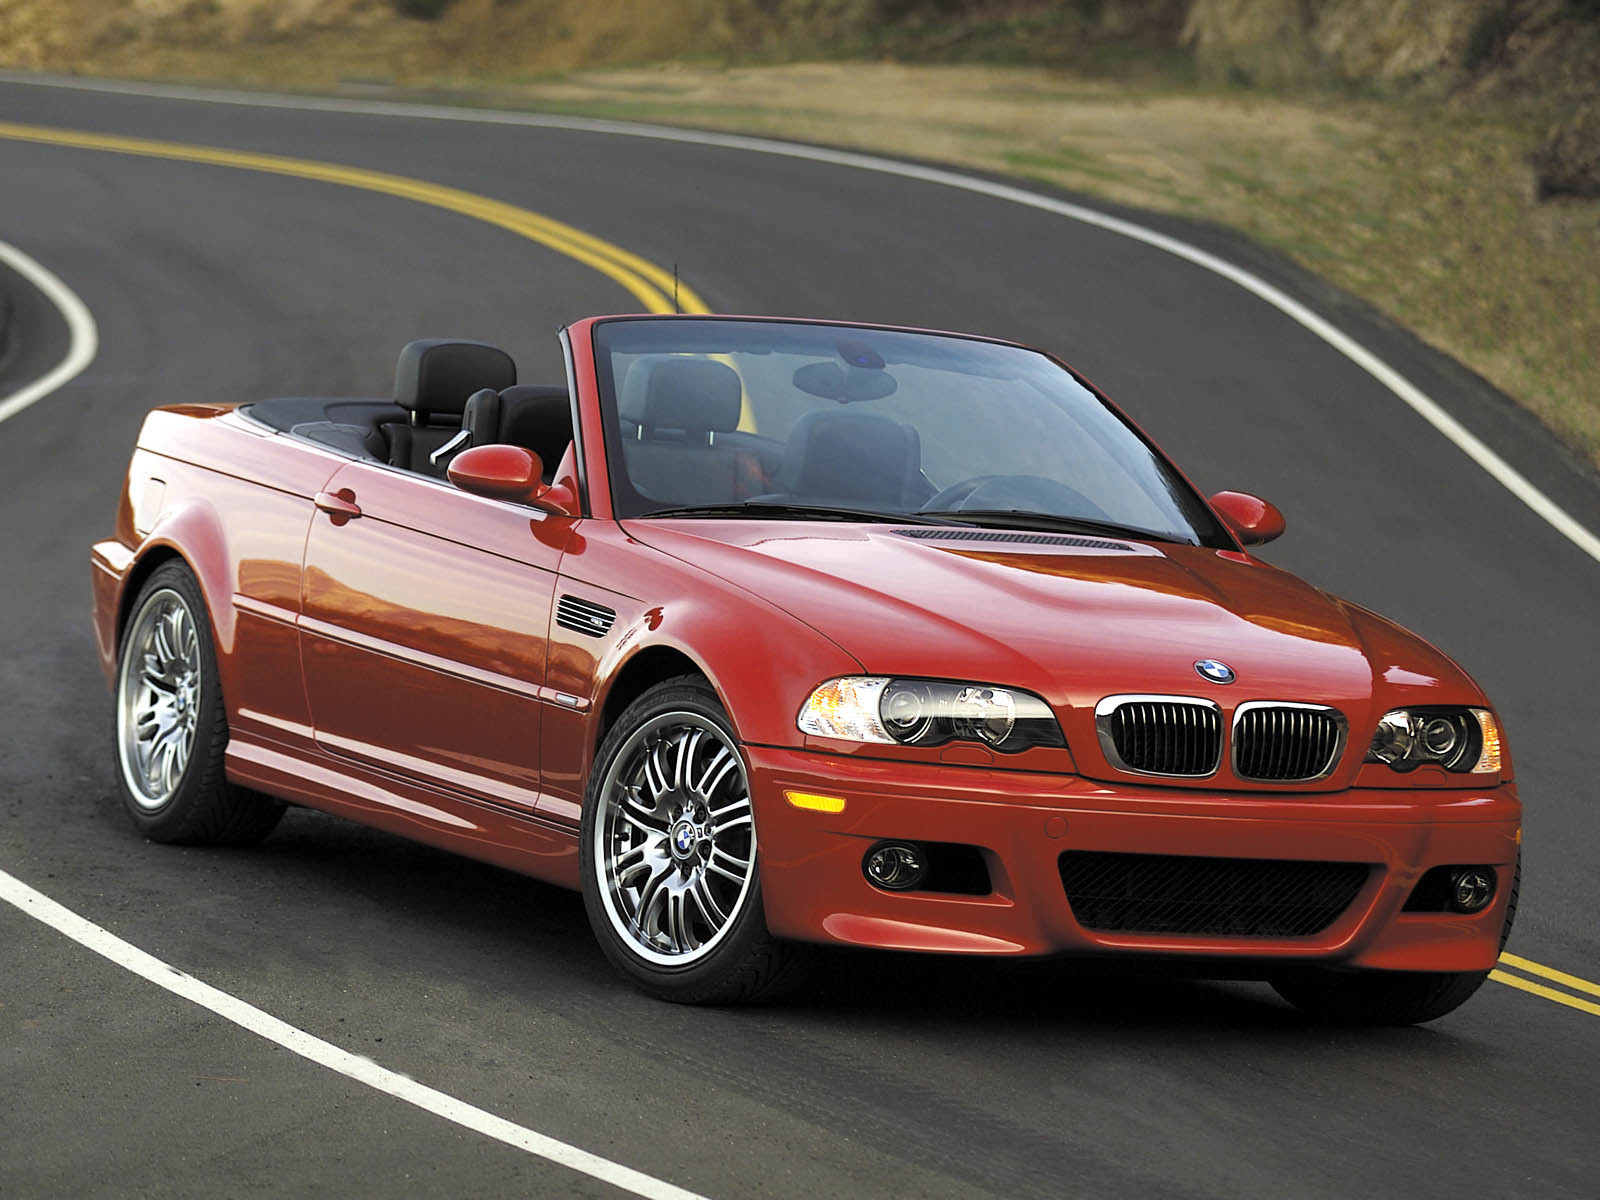 2001 - 2003 BMW M3 E46 Review - Top Speed